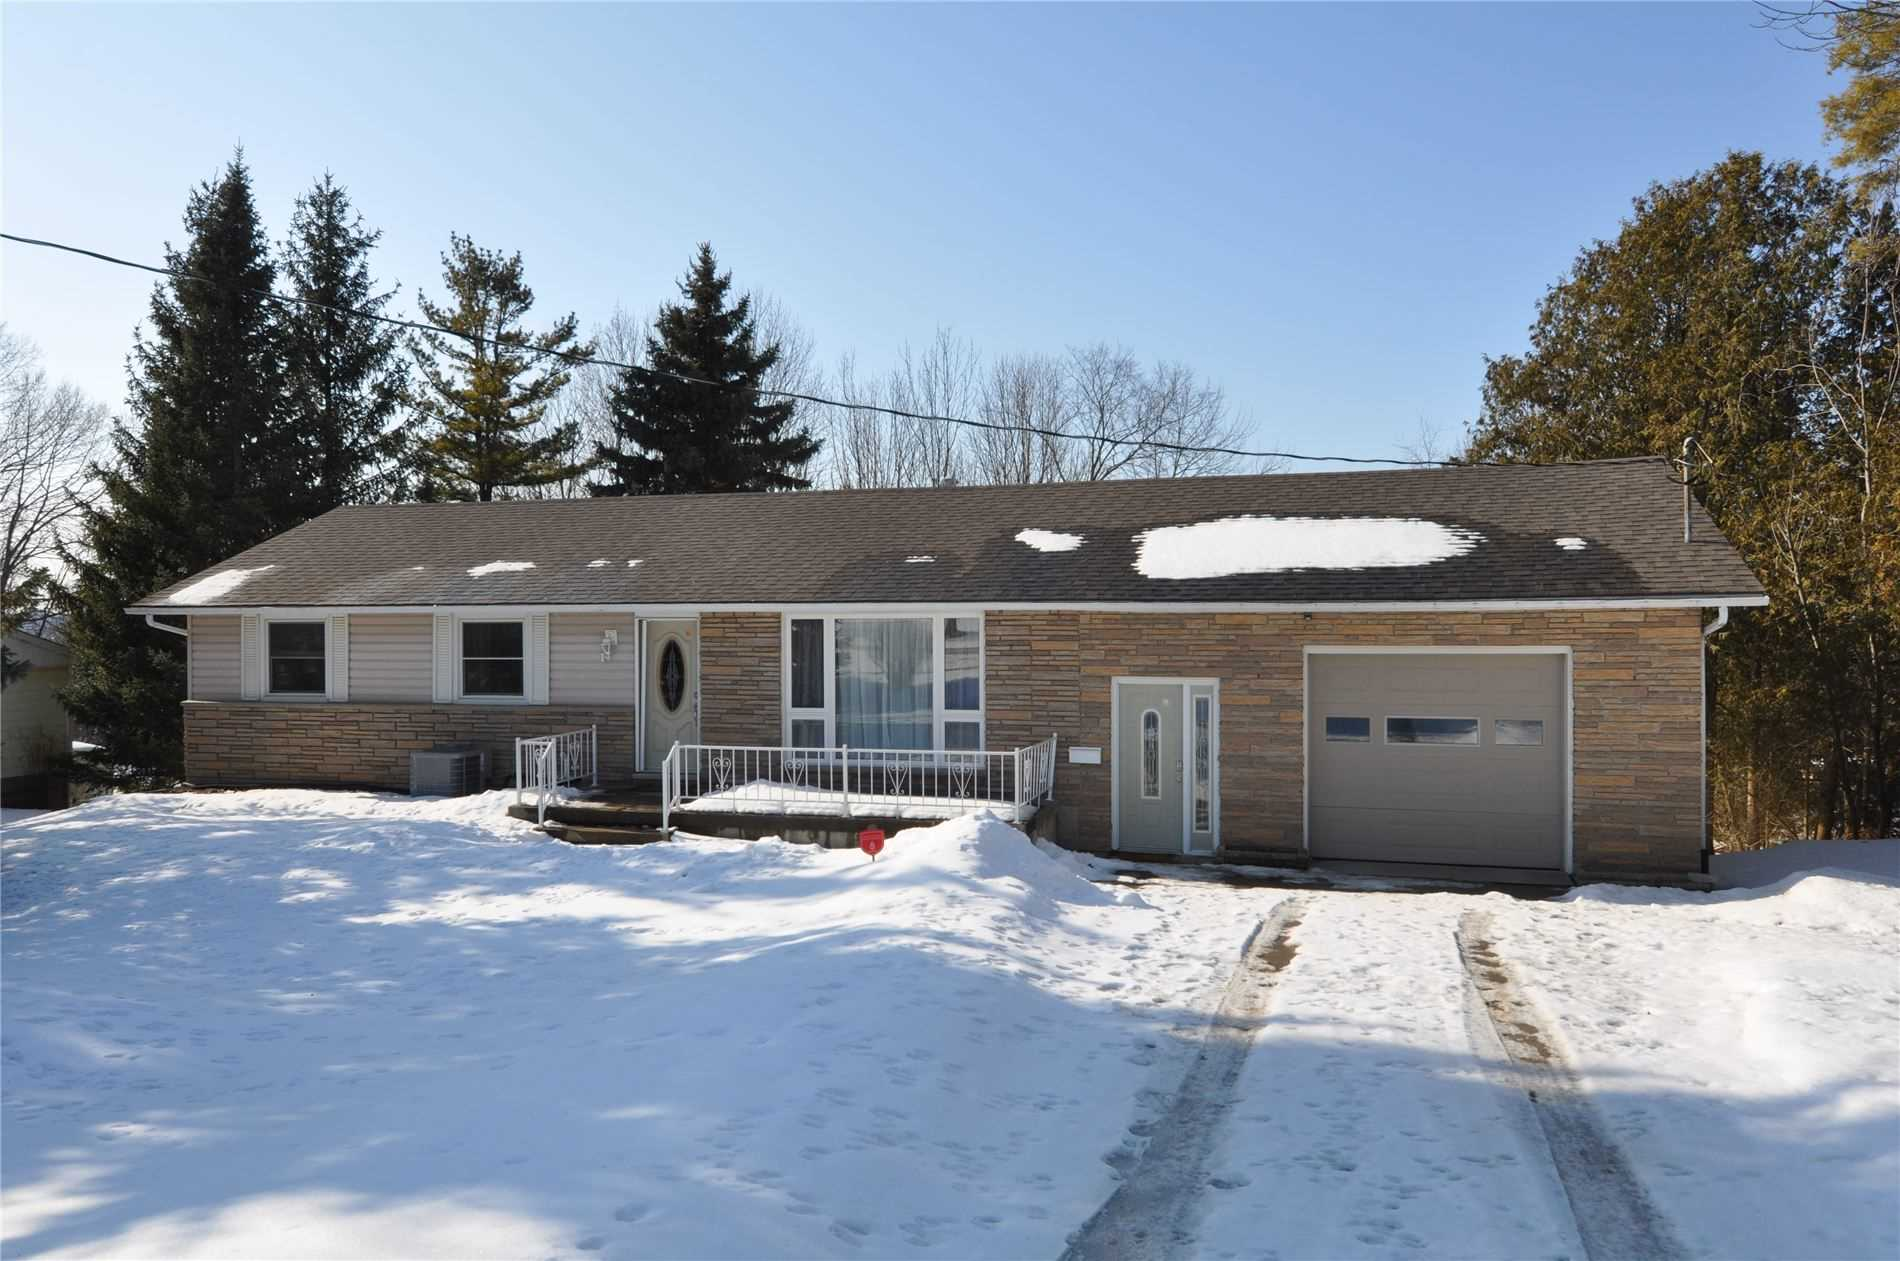 pictures of house for sale MLS: X4710682 located at 112 Clearview Cres, Meaford N4K5N3